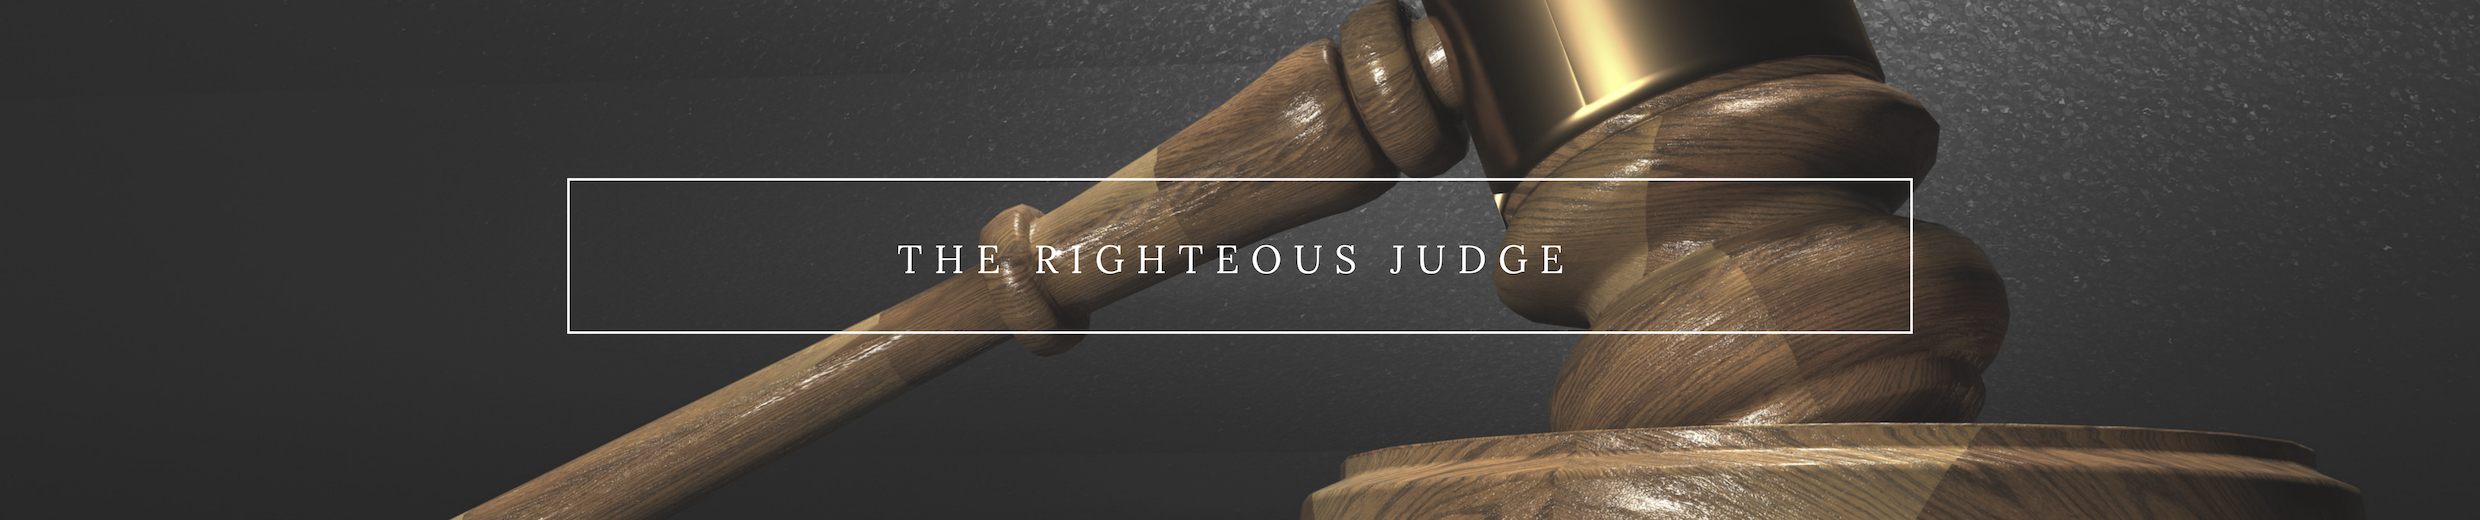 The Righteous Judge.jpg